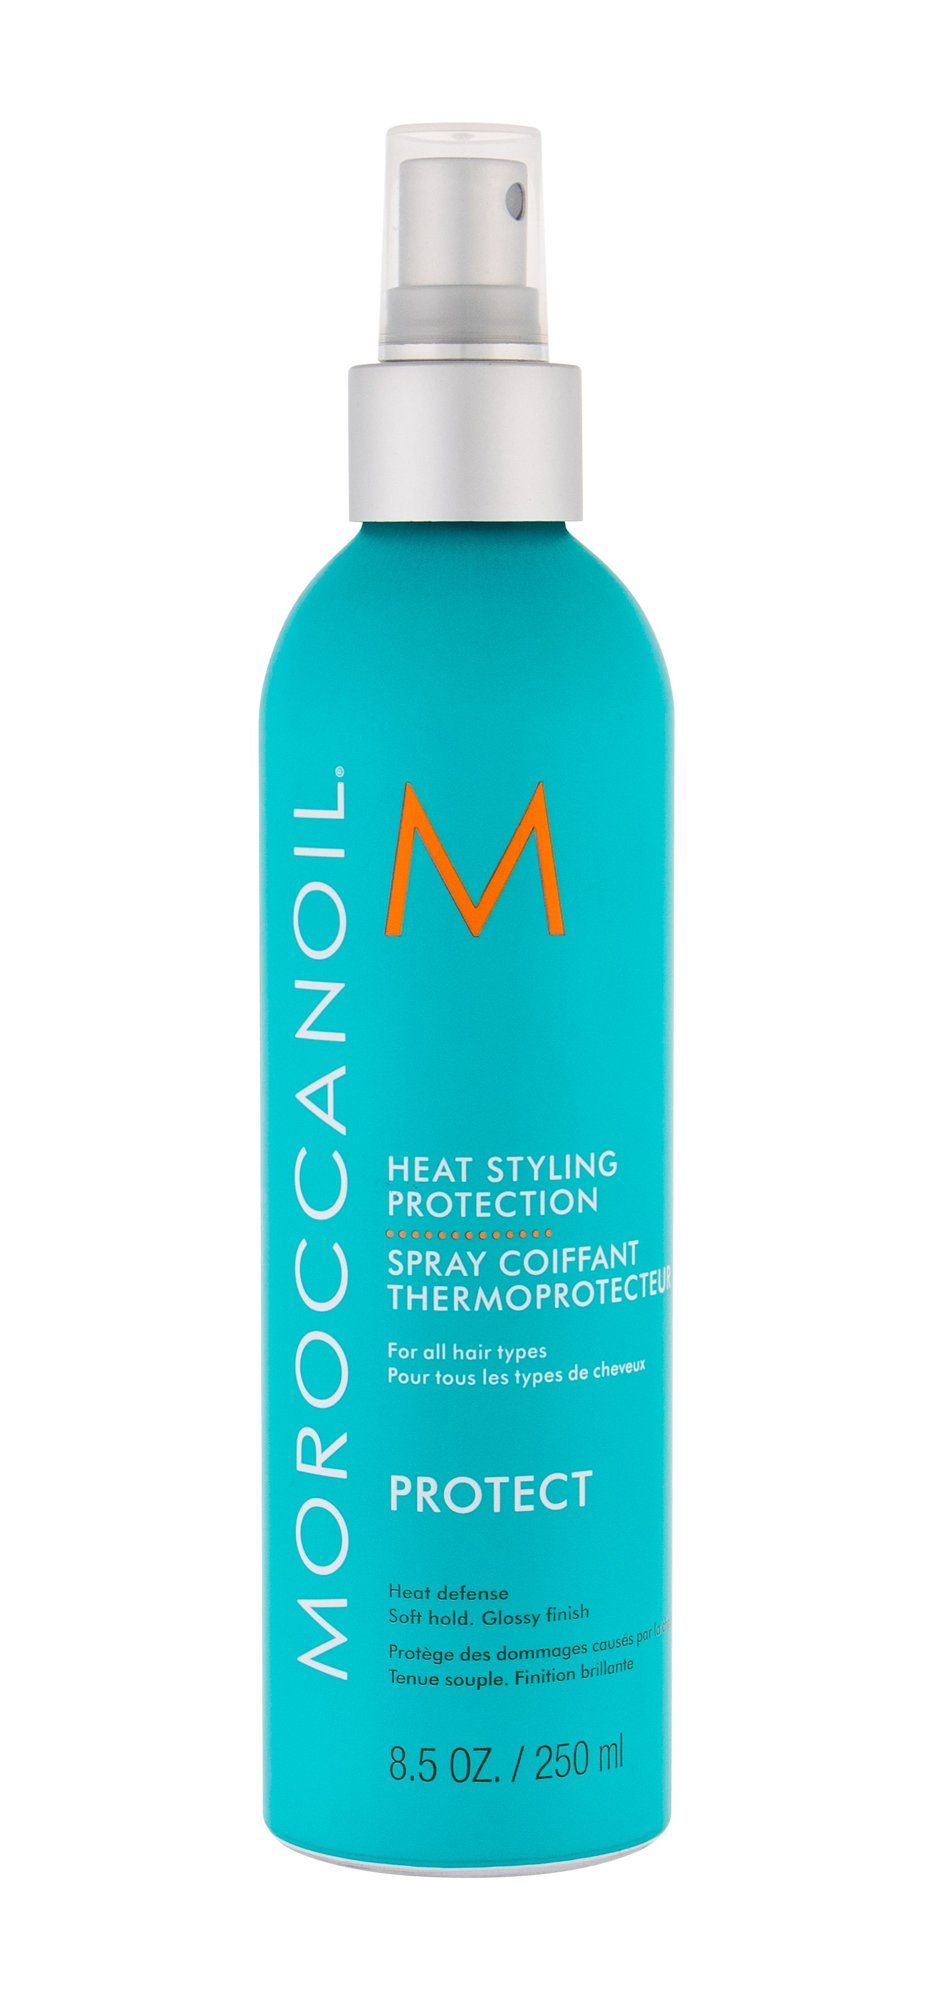 Moroccanoil Protect For Heat Hairstyling 250ml  Heat Styling Protection Spray